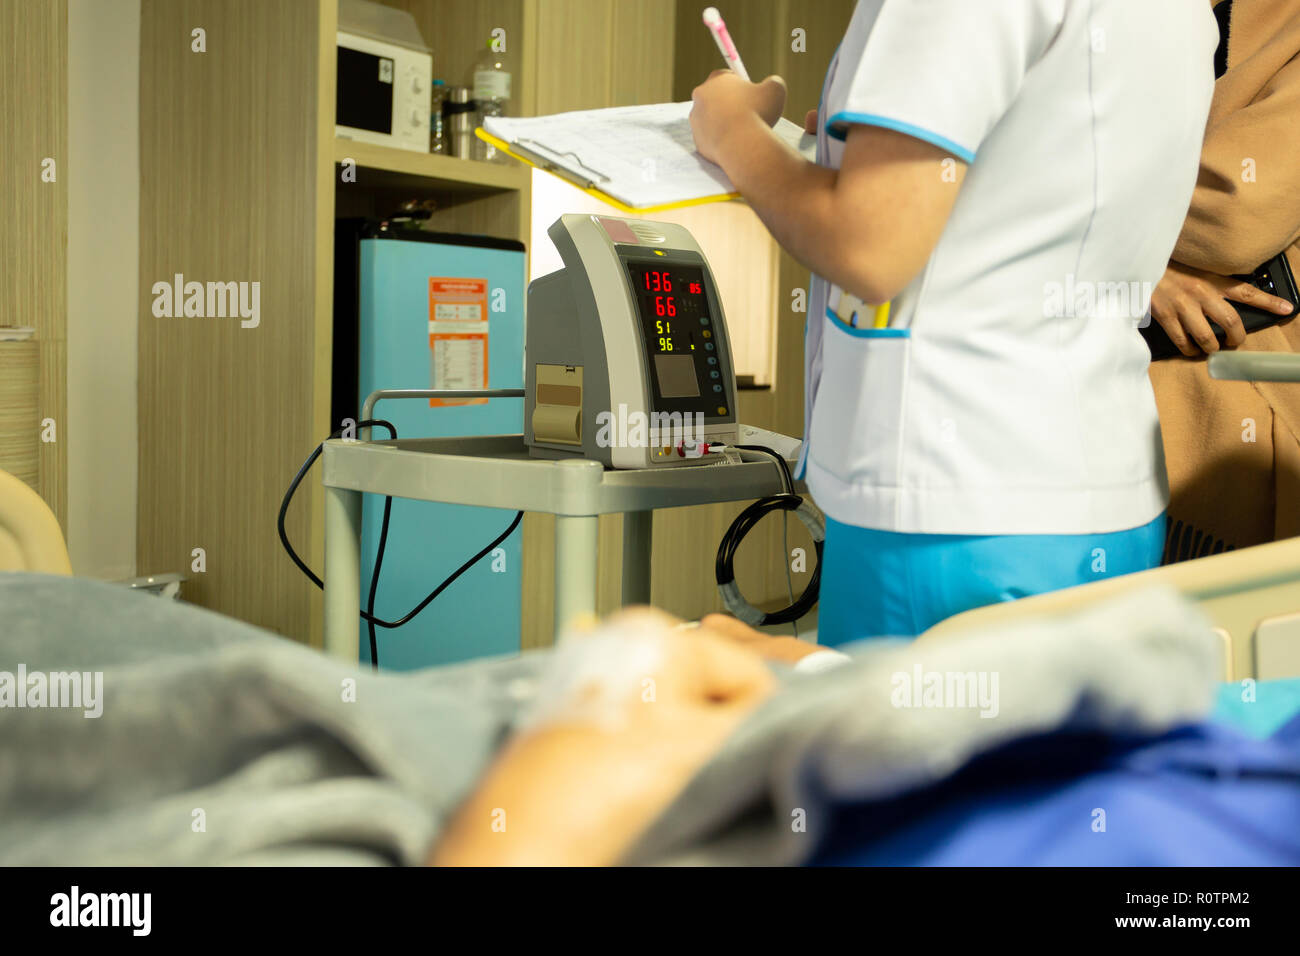 Nurse checking blood pressure on monitor screen for patient health in hospital. - Stock Image